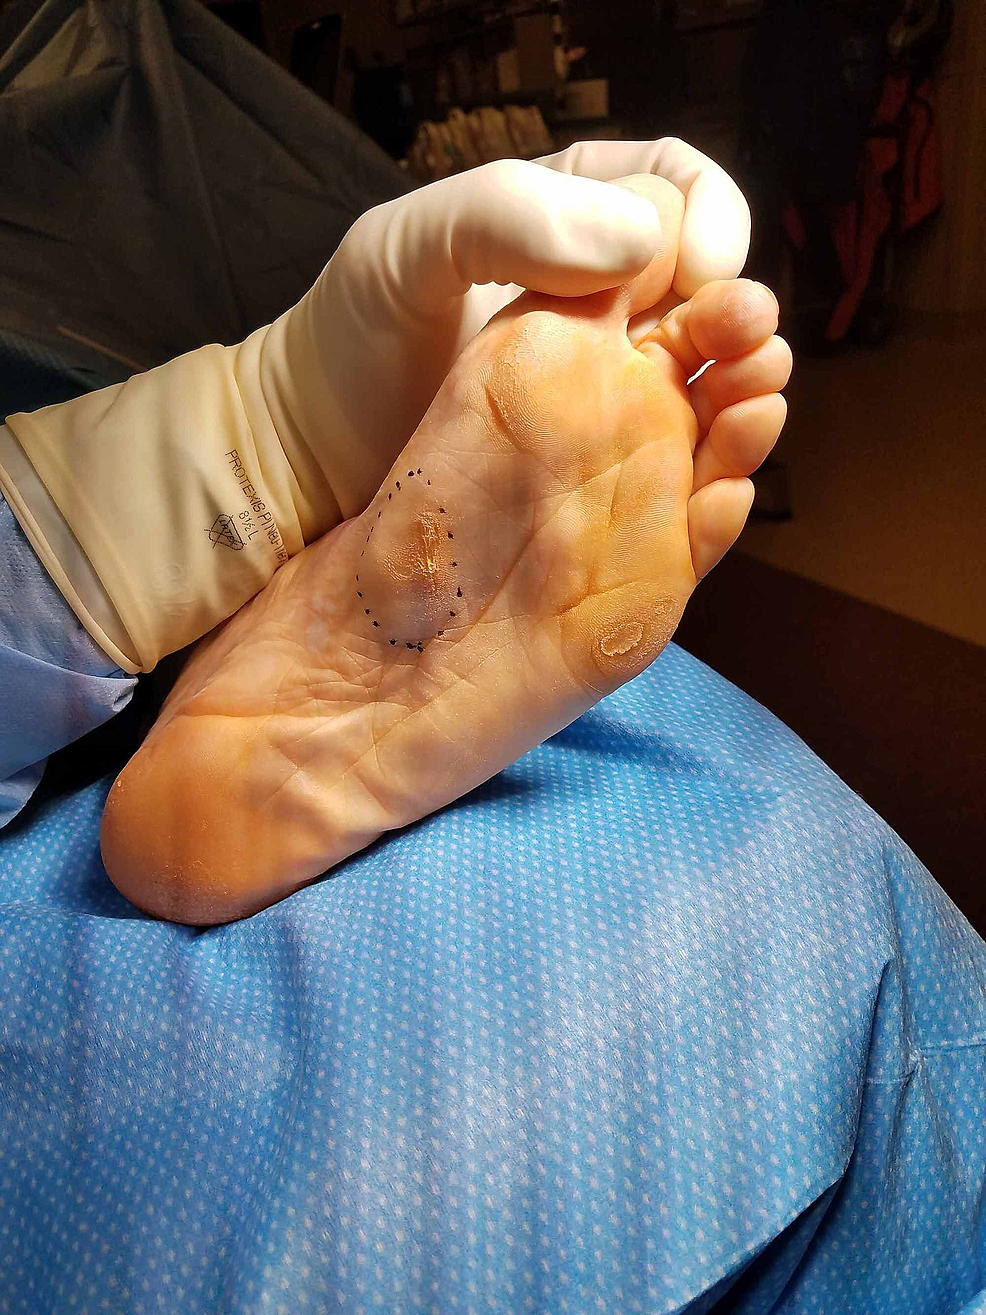 Case-2-pre-operative-photograph-demonstrating-the-recurrent-plantar-fibroma-mass-(note-the-old-mildly-hyperkeratotic-scar).